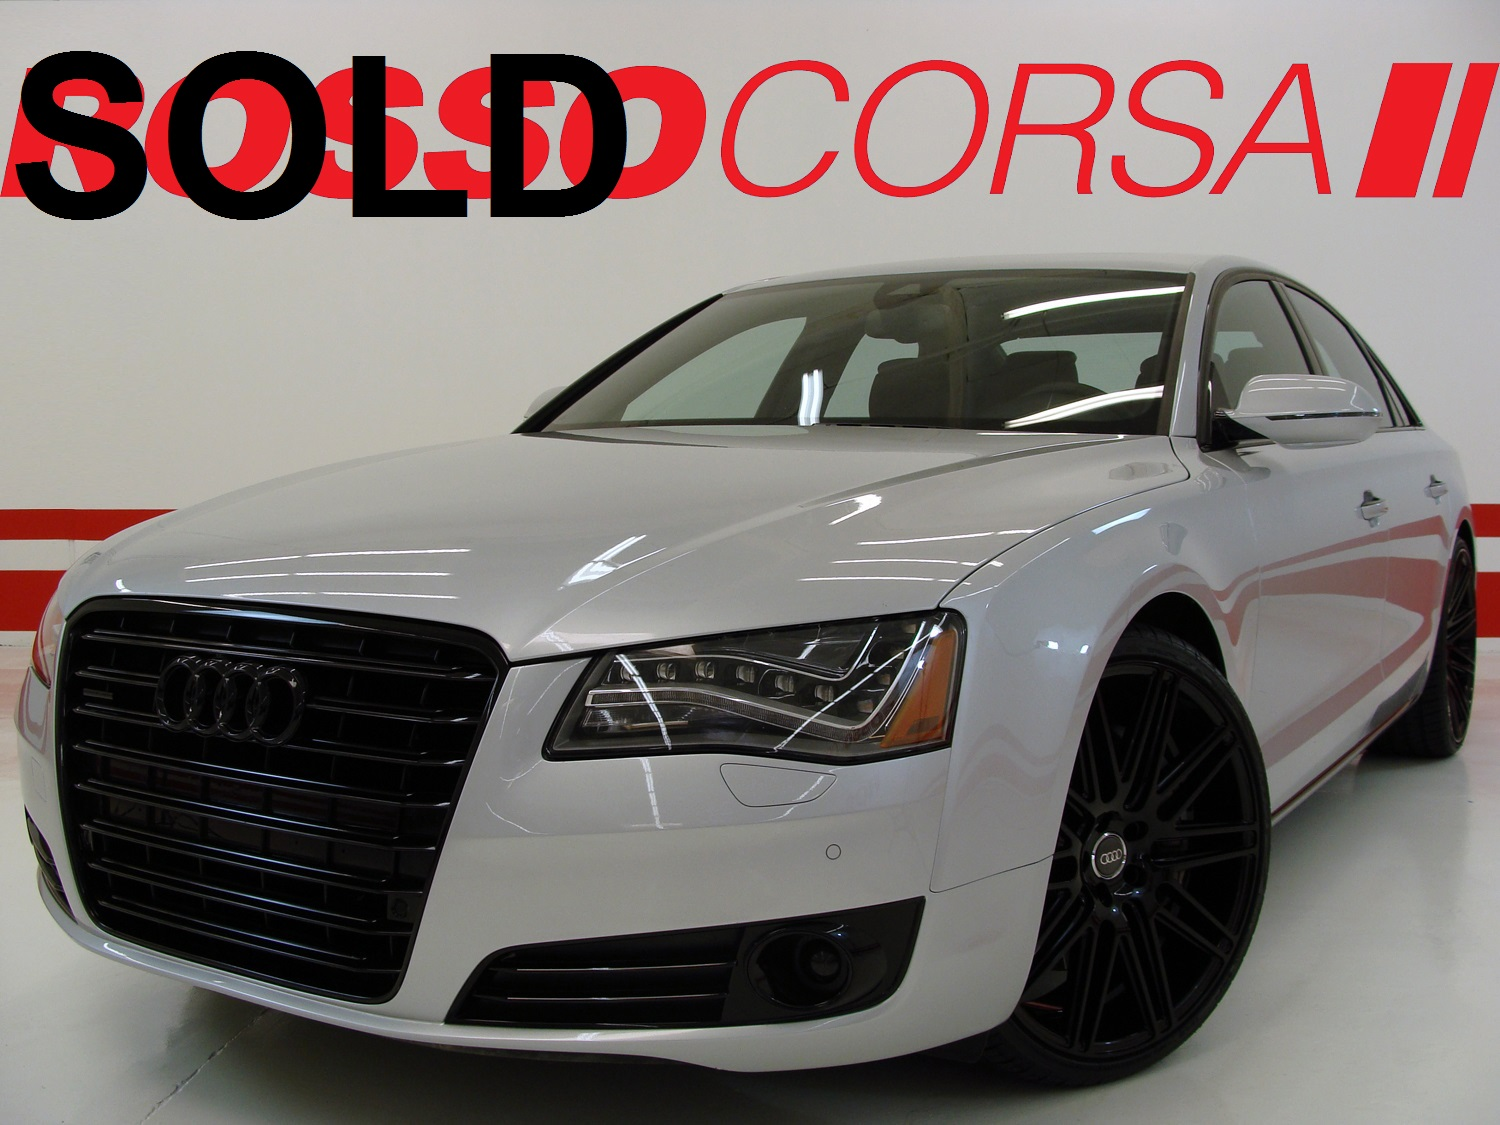 2012 AUDI A8 4.2 QUATTRO CUSTOM ONE OF A KIND